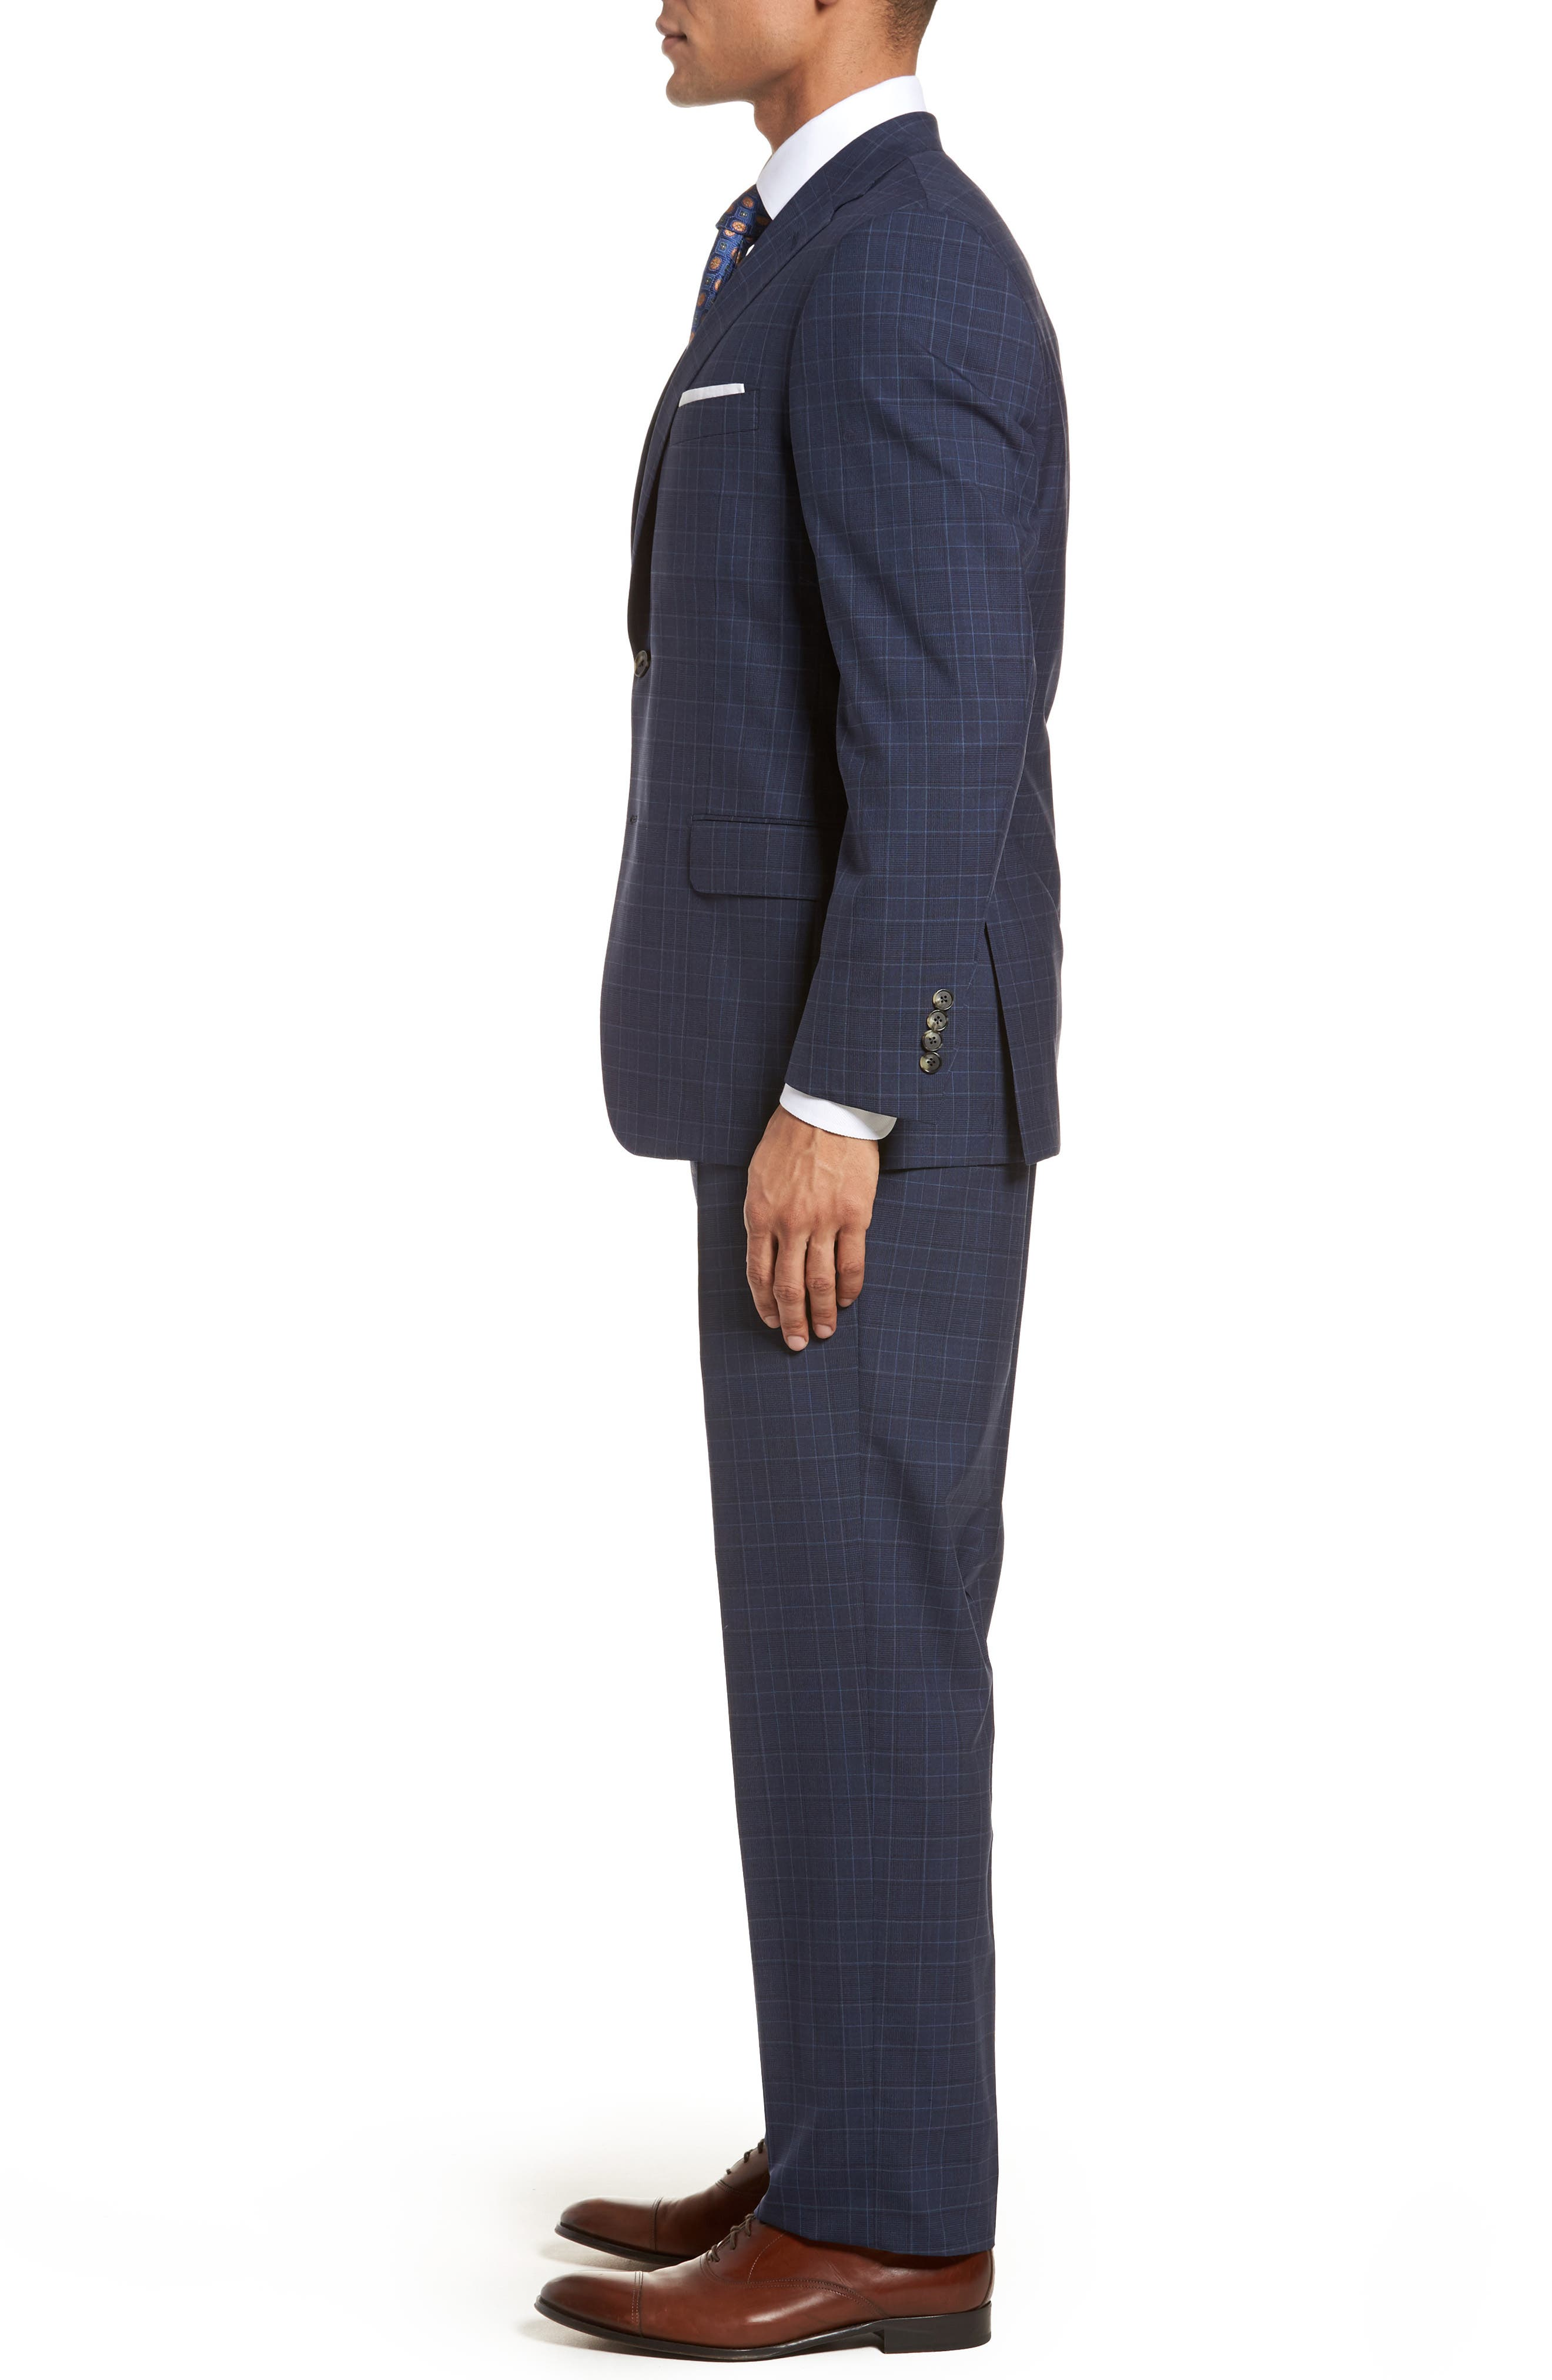 HICKEY FREEMAN,                             Classic B Fit Plaid Wool Suit,                             Alternate thumbnail 3, color,                             400